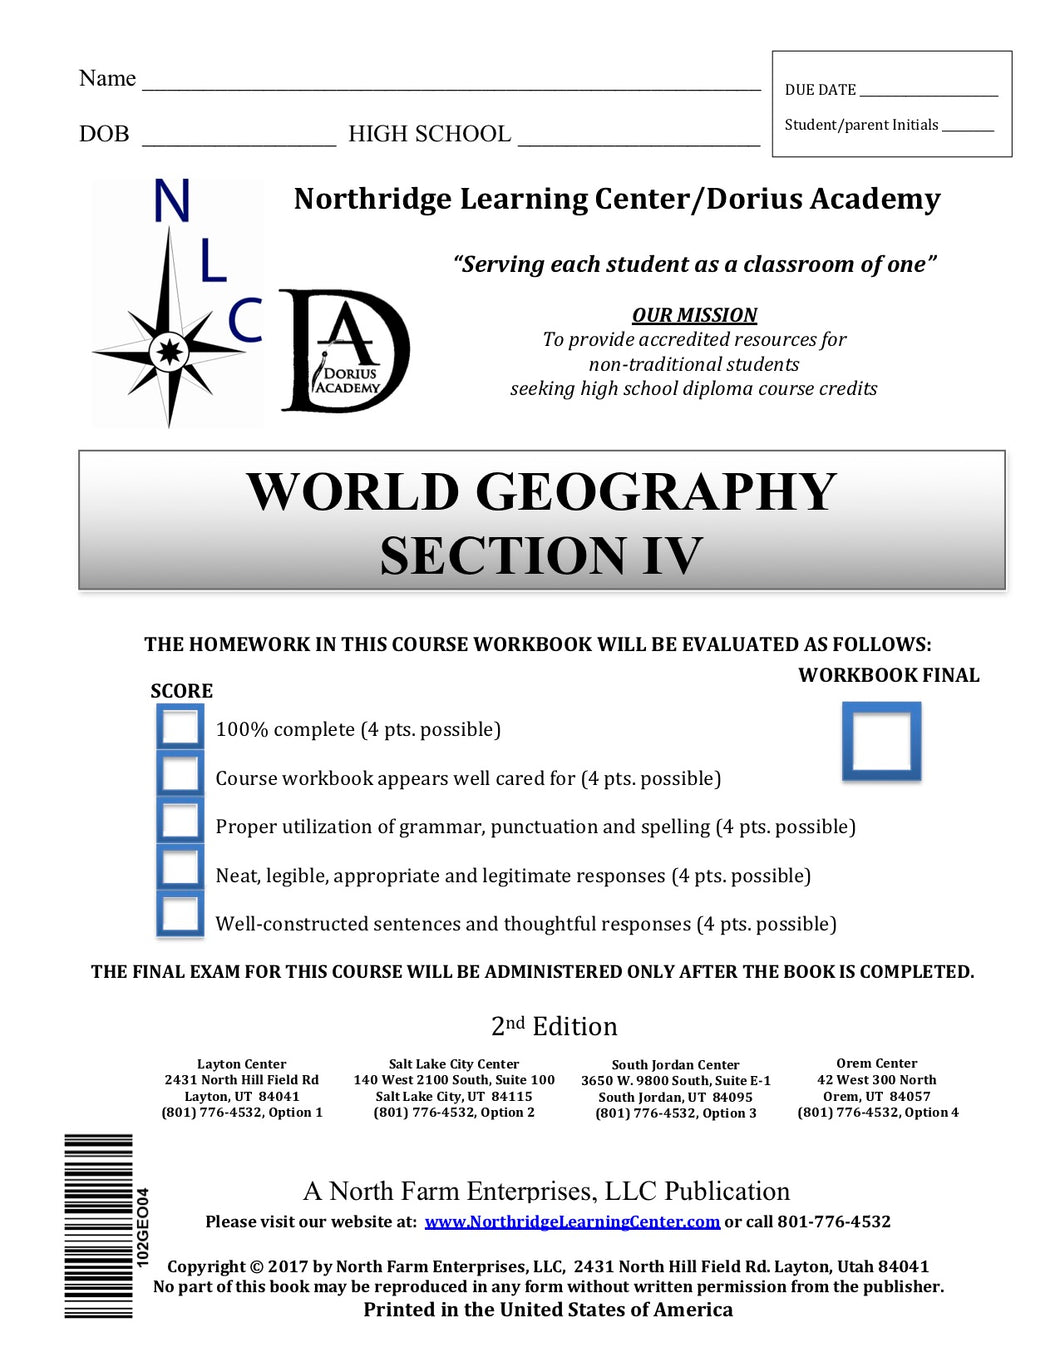 World Geography, Section IV